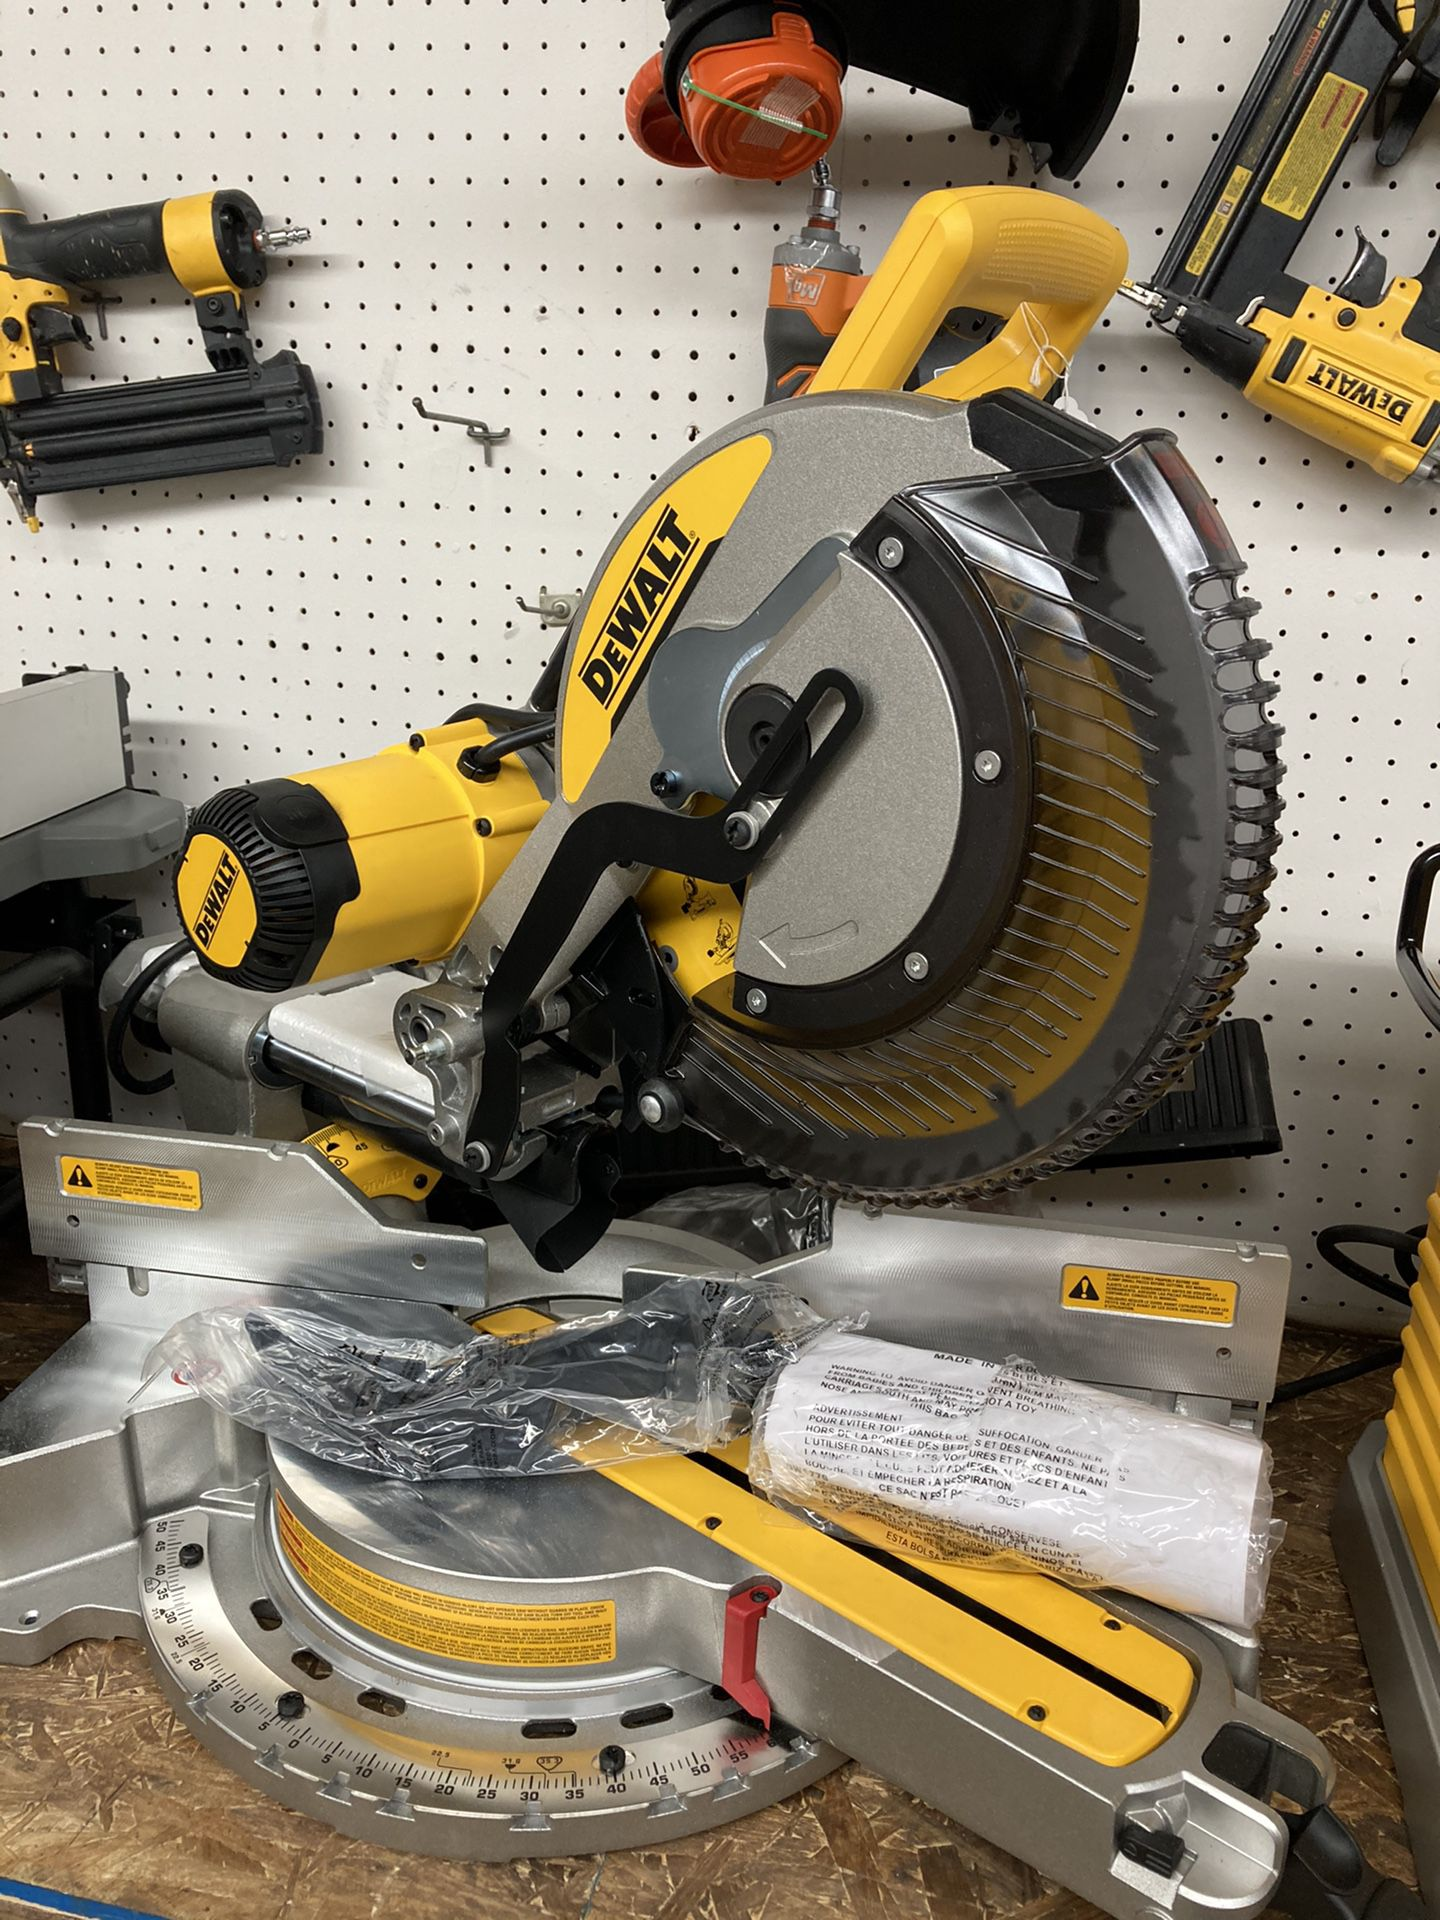 DEWALT 15 Amp Corded 12 in. Double Bevel Sliding Compound Miter Saw, Blade Wrench & Material Clamp